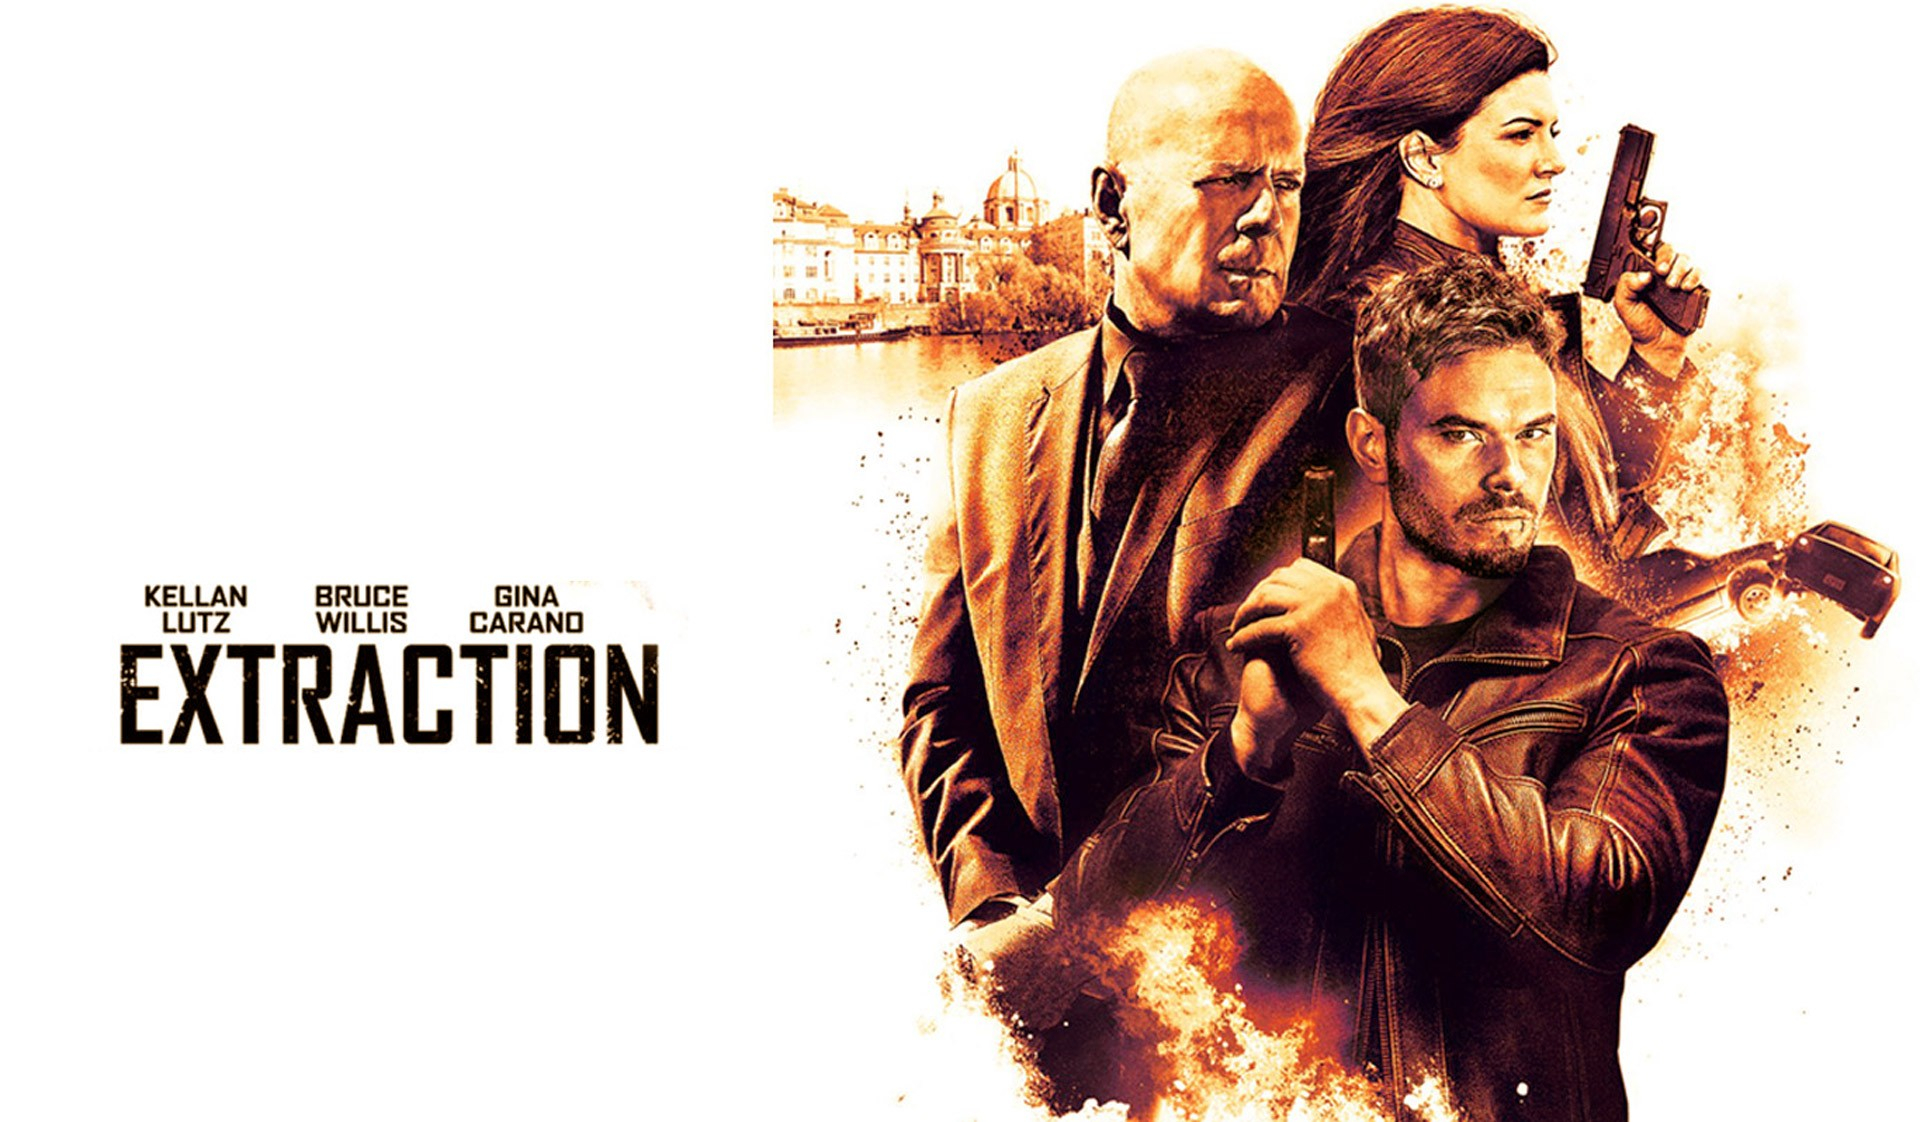 Extraction Wallpapers Movie Hq Extraction Pictures 4k Wallpapers 2019